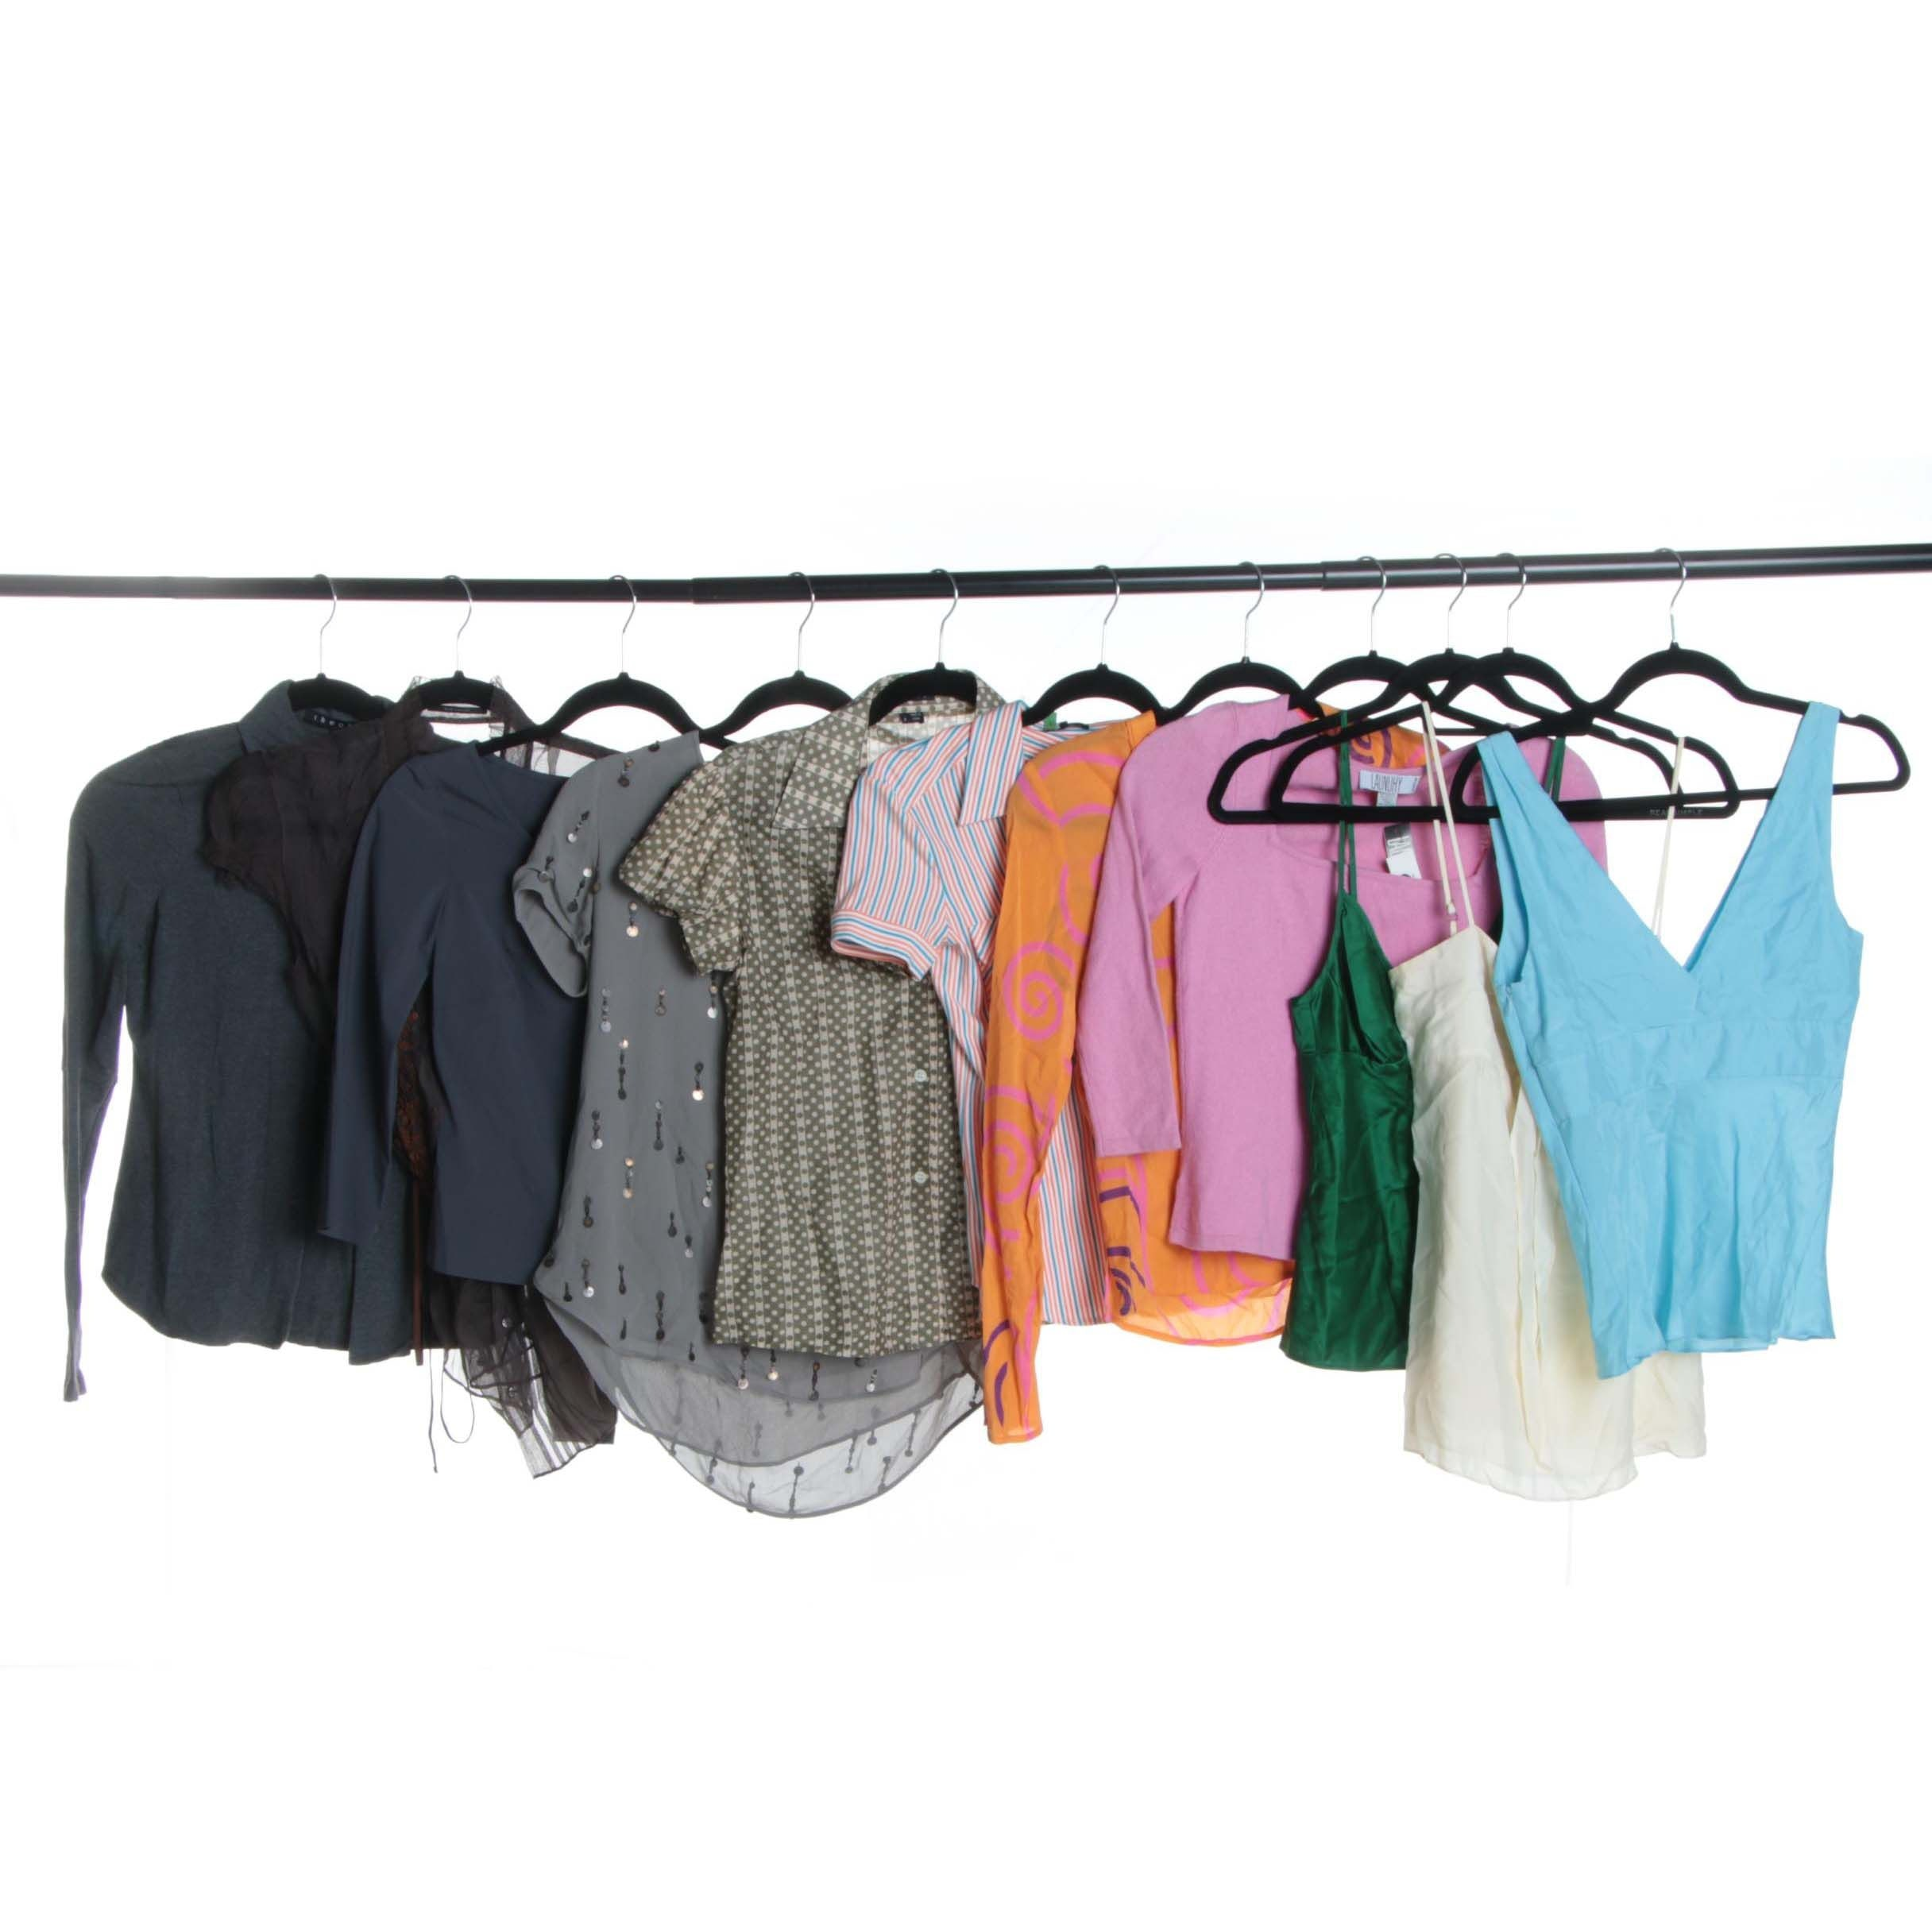 Women's Contemporary Tops Including Theory and Elie Tahari